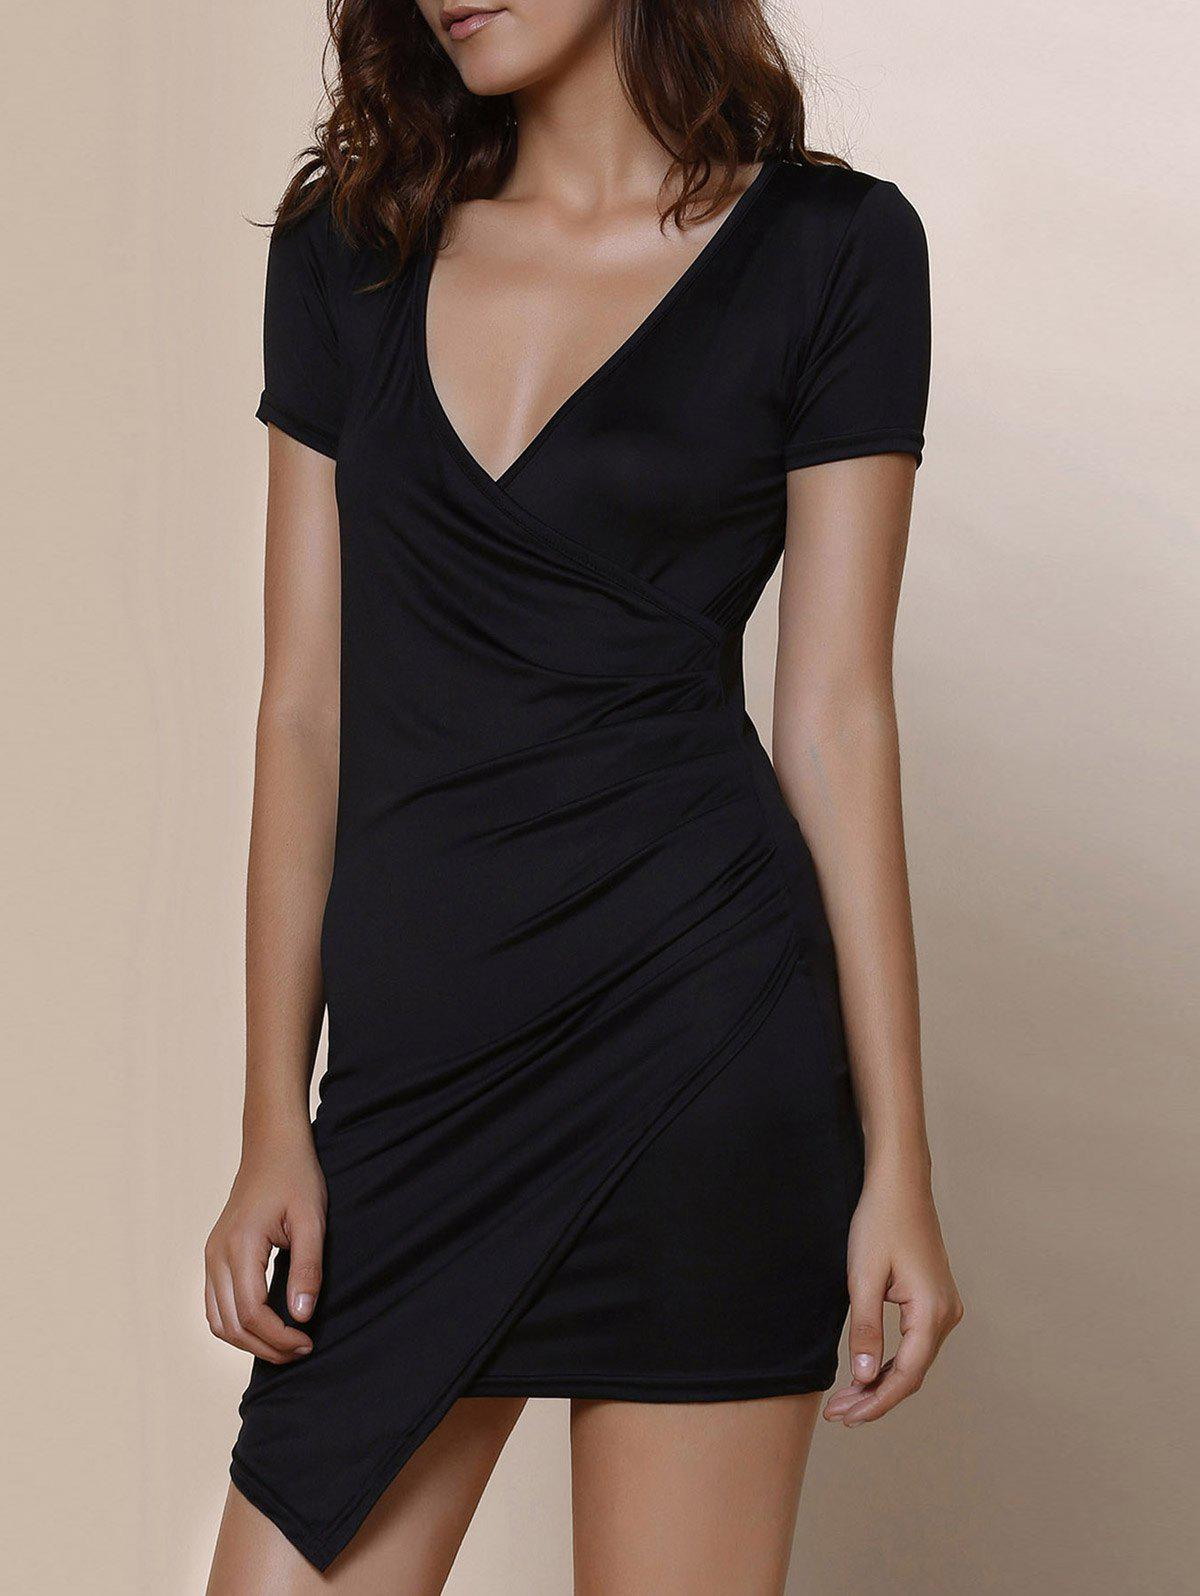 Plunging Collar Short Sleeve Solid Color Bodycon Dress - BLACK S